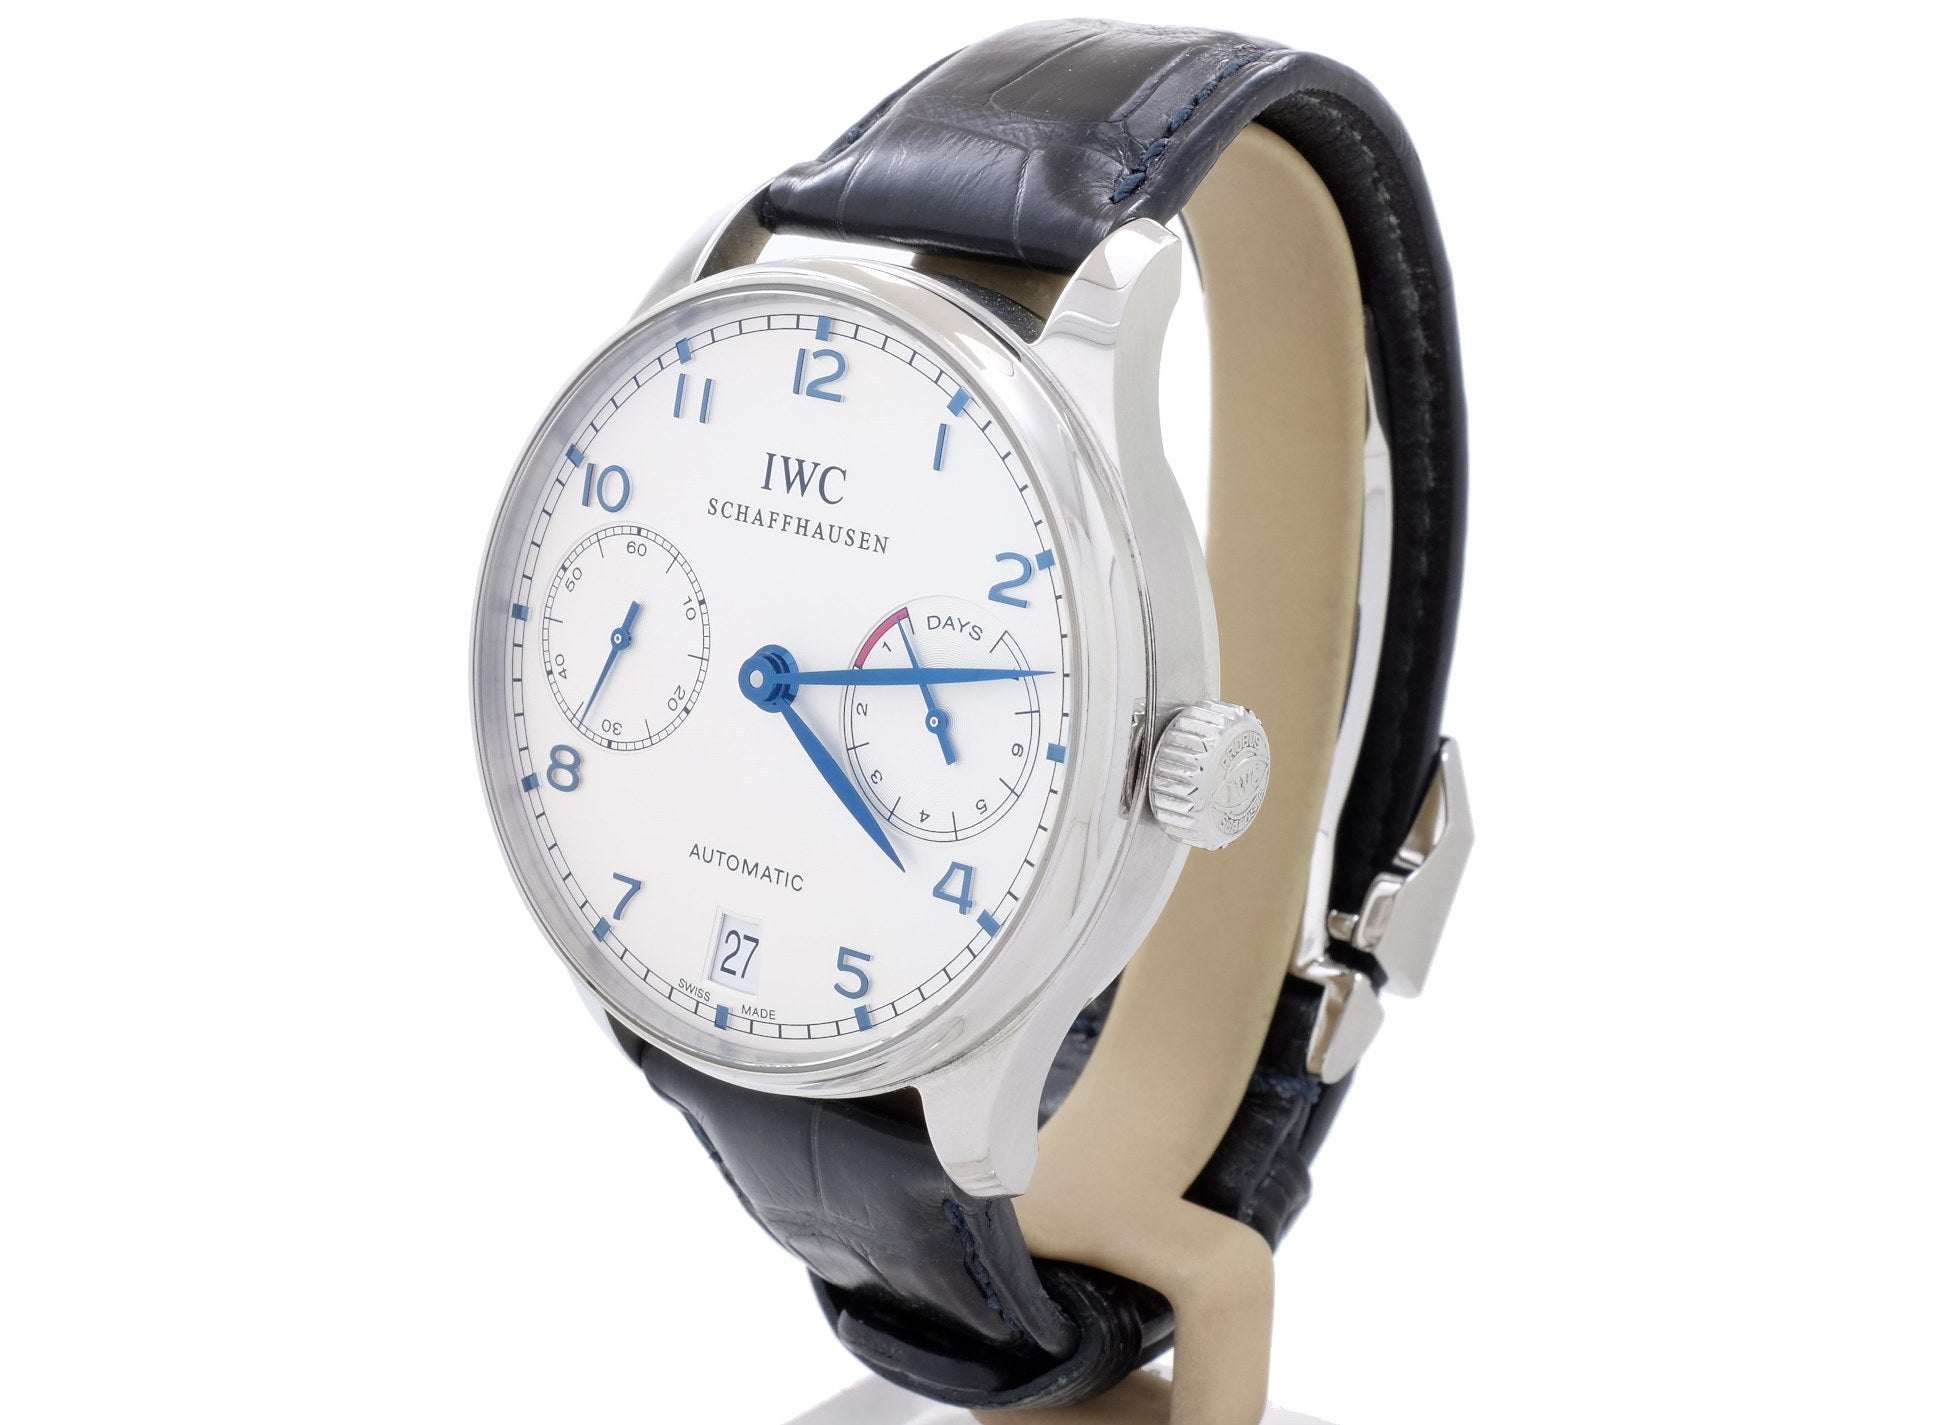 42mm IWC PORTUGIESER Ref. 5001 with Large Display Case Back in Superb Condition